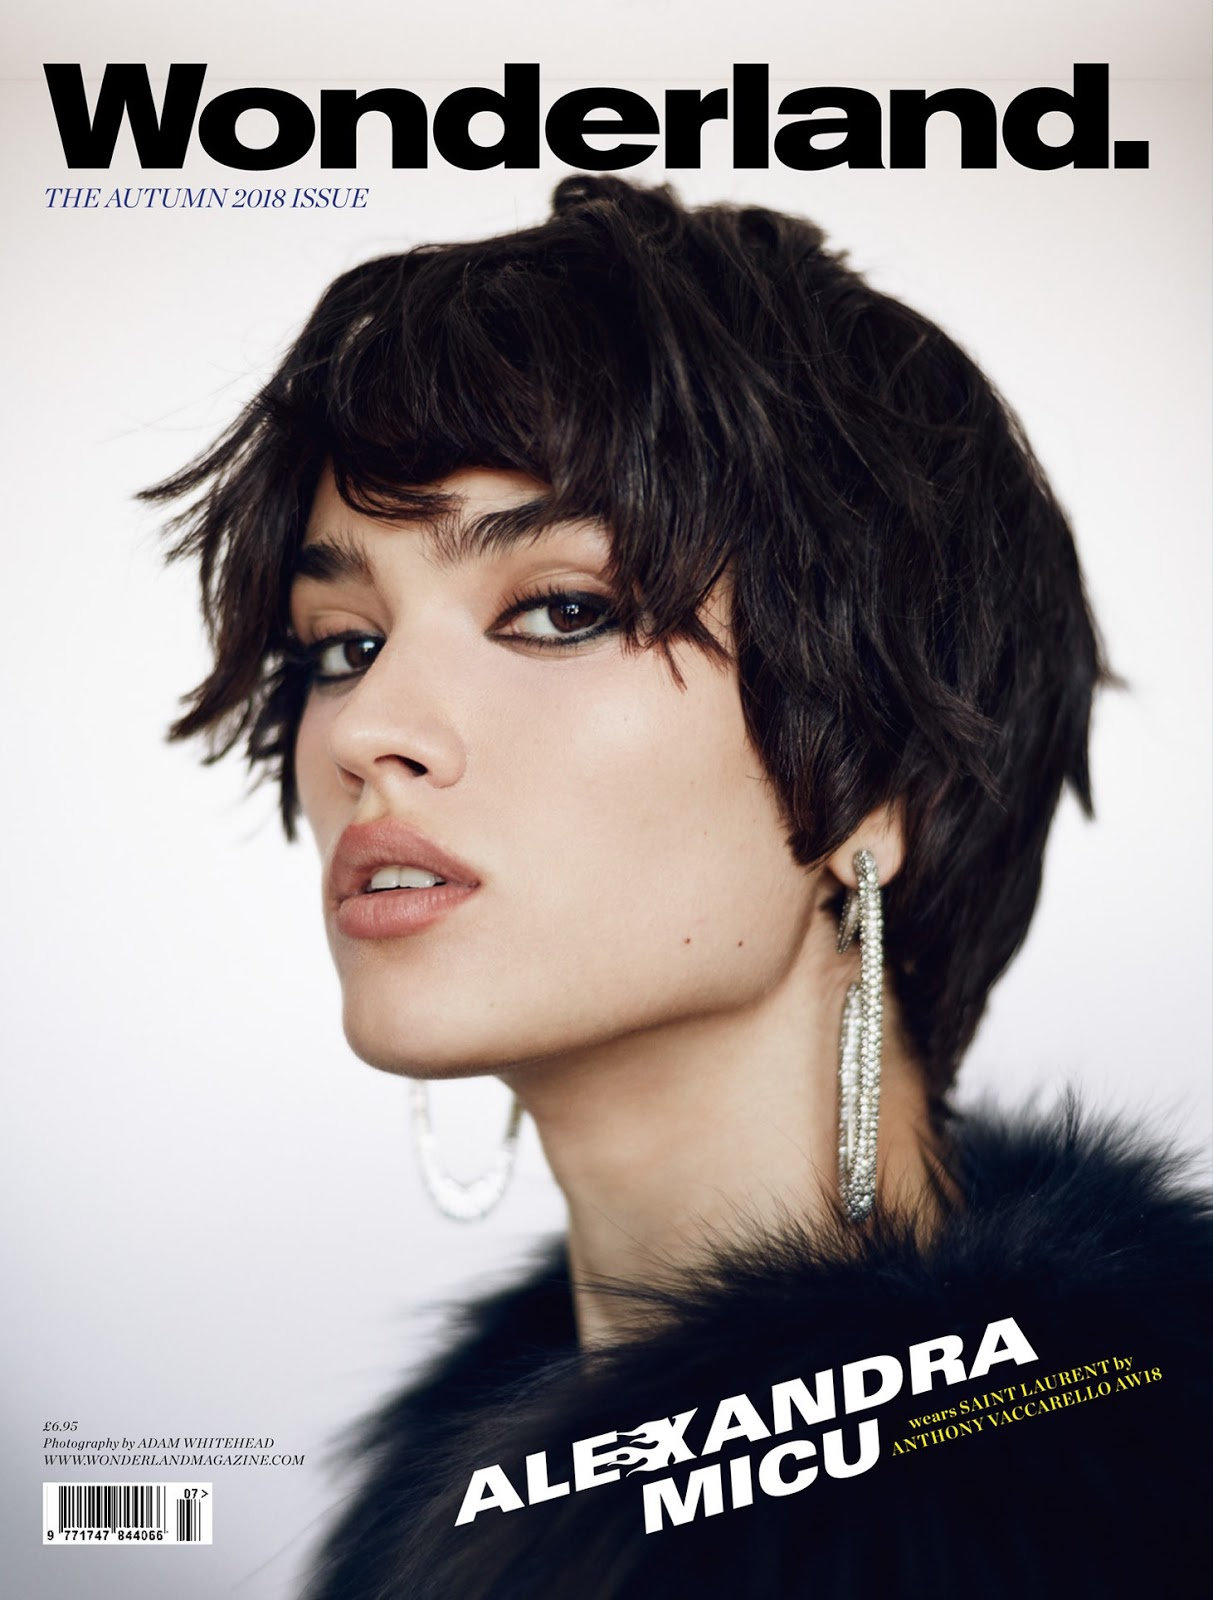 Wonderland Magazine Autumn 2018 11.jpg